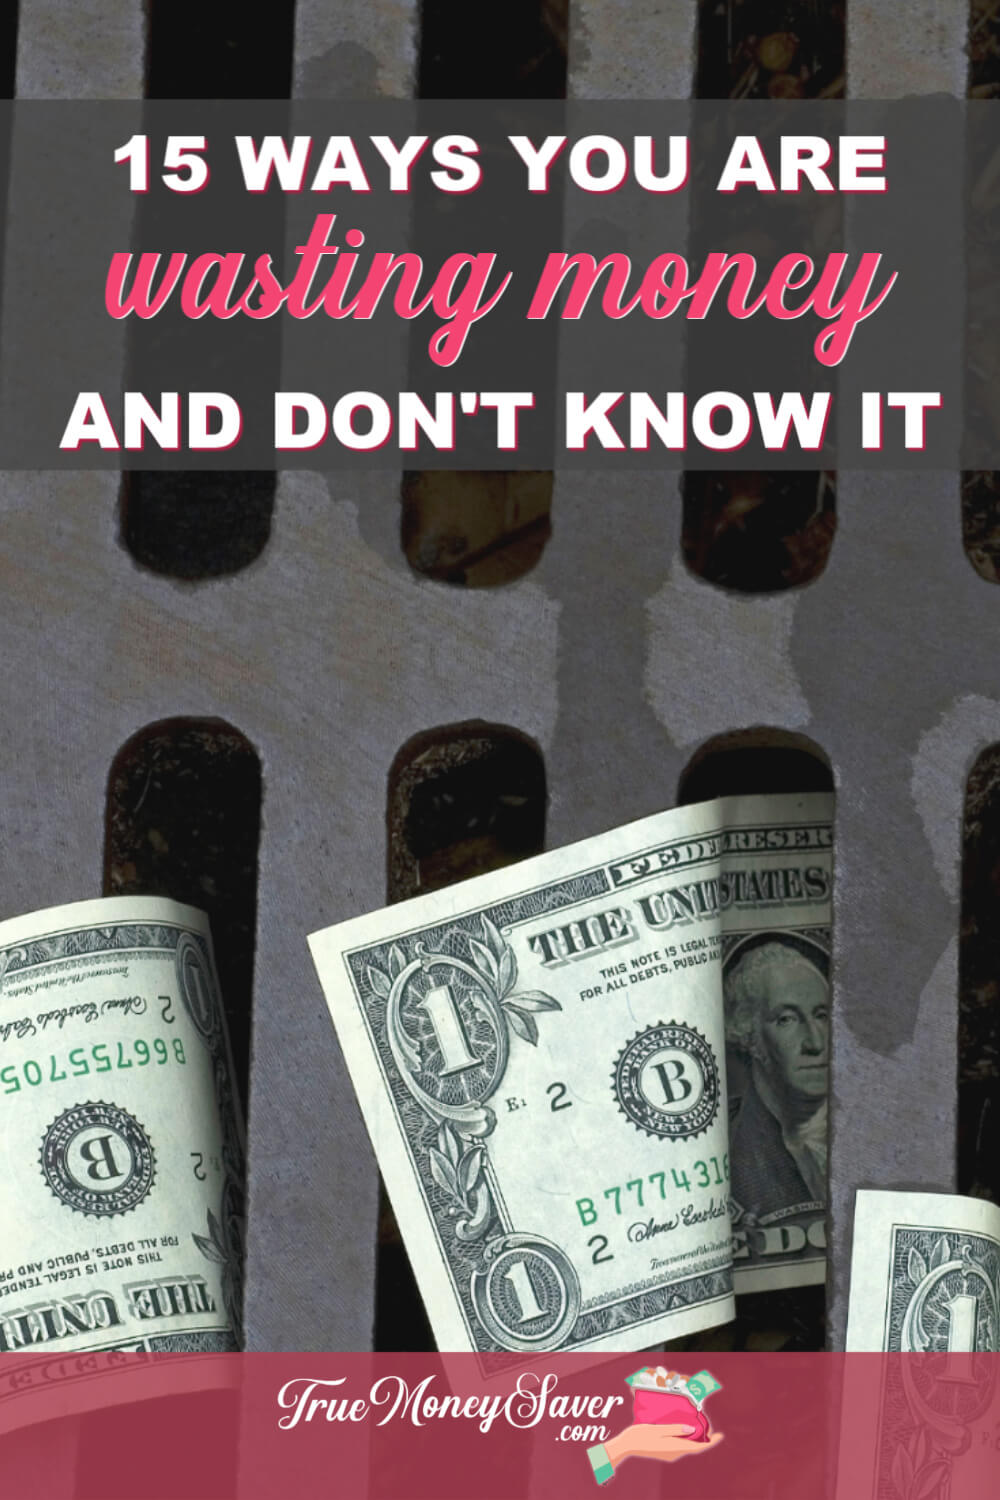 Stop letting your money fly outta your wallet! Check out these surprising ways you are wasting money and put a stop to it right away! #truemoneysaver #savings #debtfree #wastingmoney #savingmoney